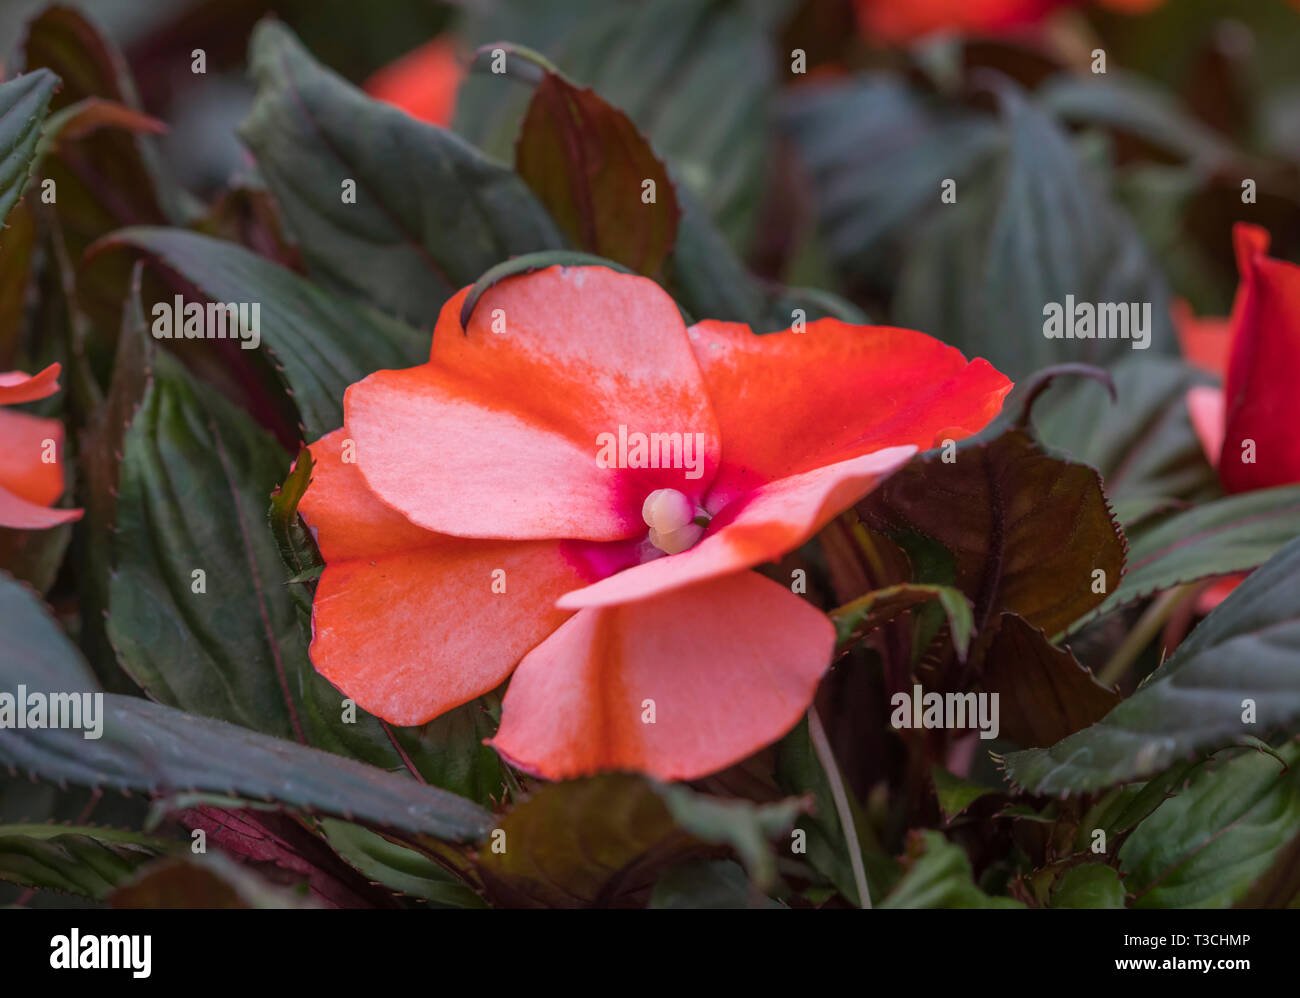 Impatiens 'New Guinea' perennial plant flowering in Spring in West Sussex, UK. - Stock Image